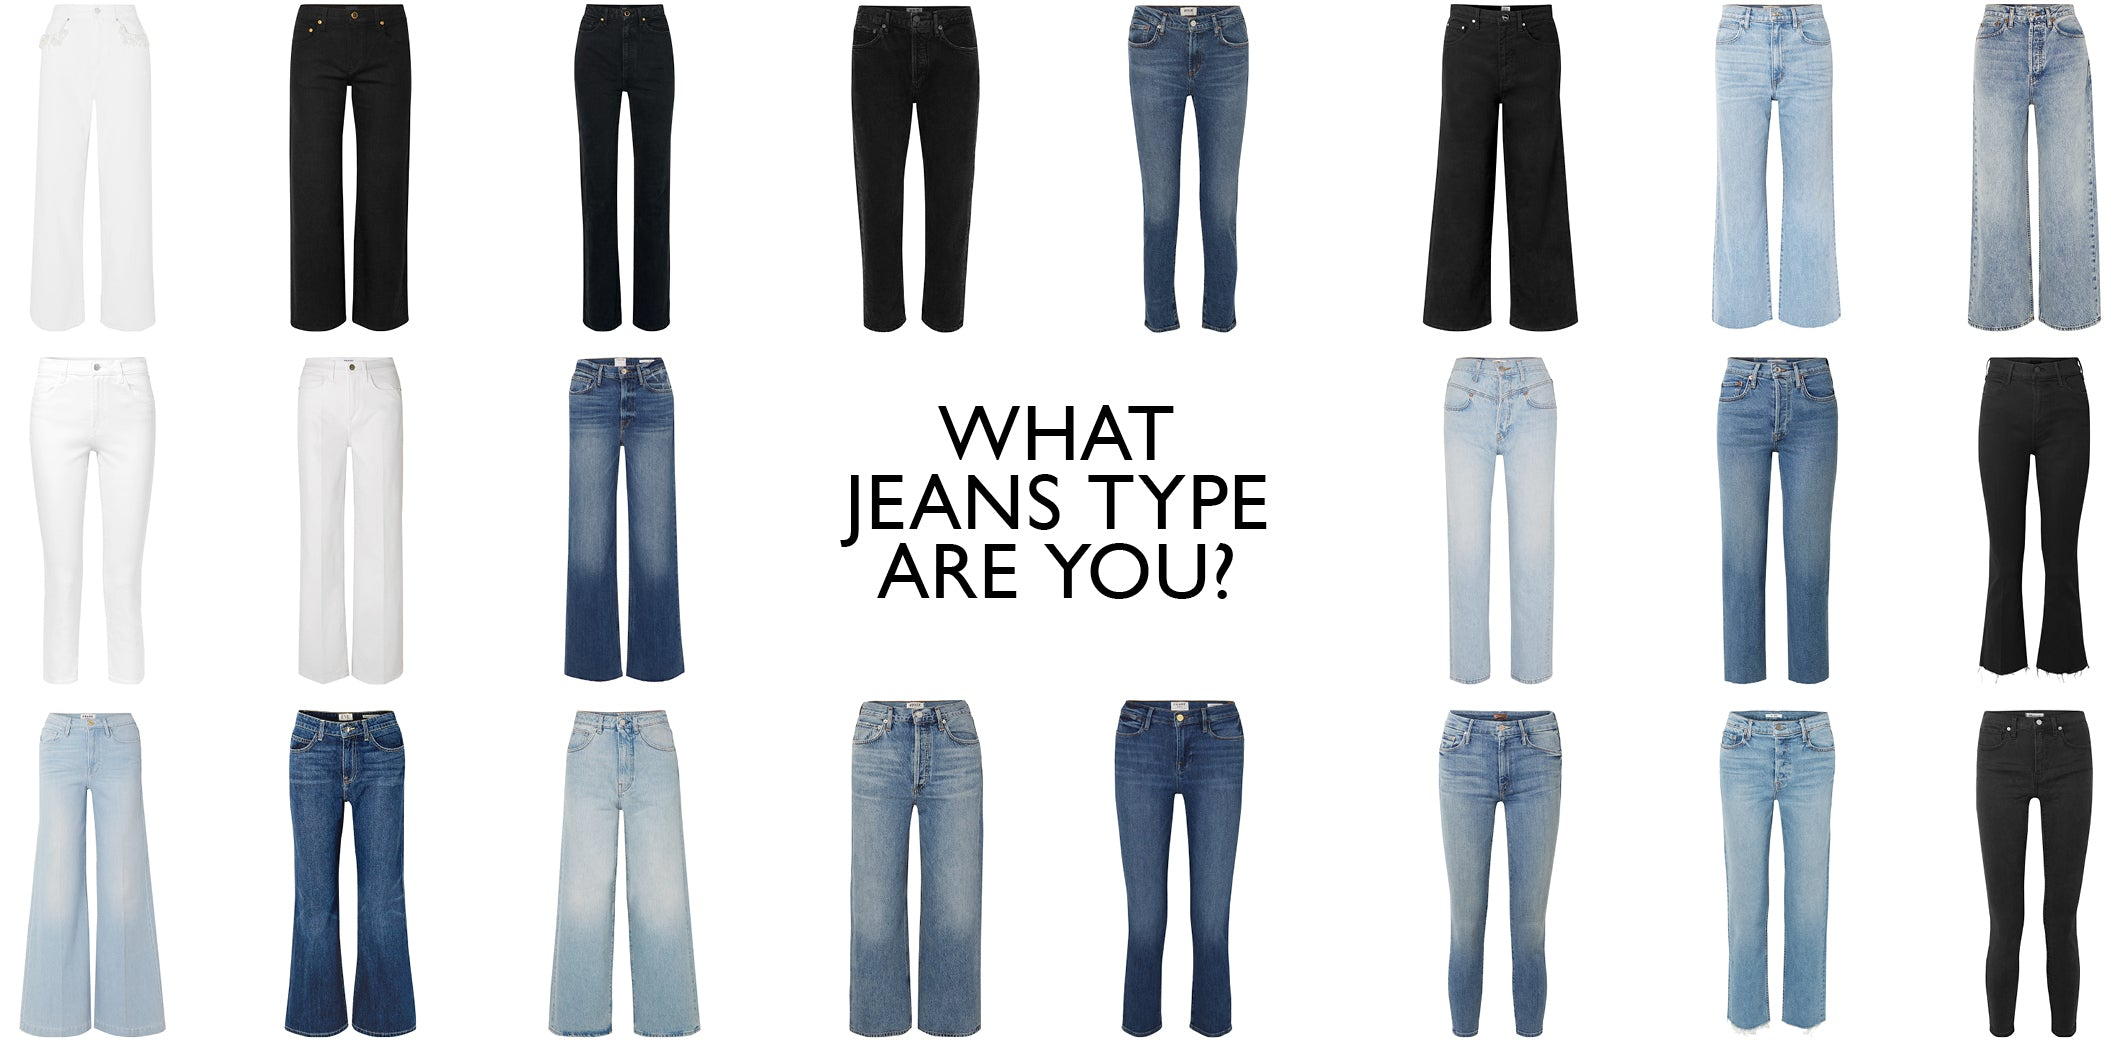 Jeans - Capsule Wardrobe Collection - What jeans type are you?